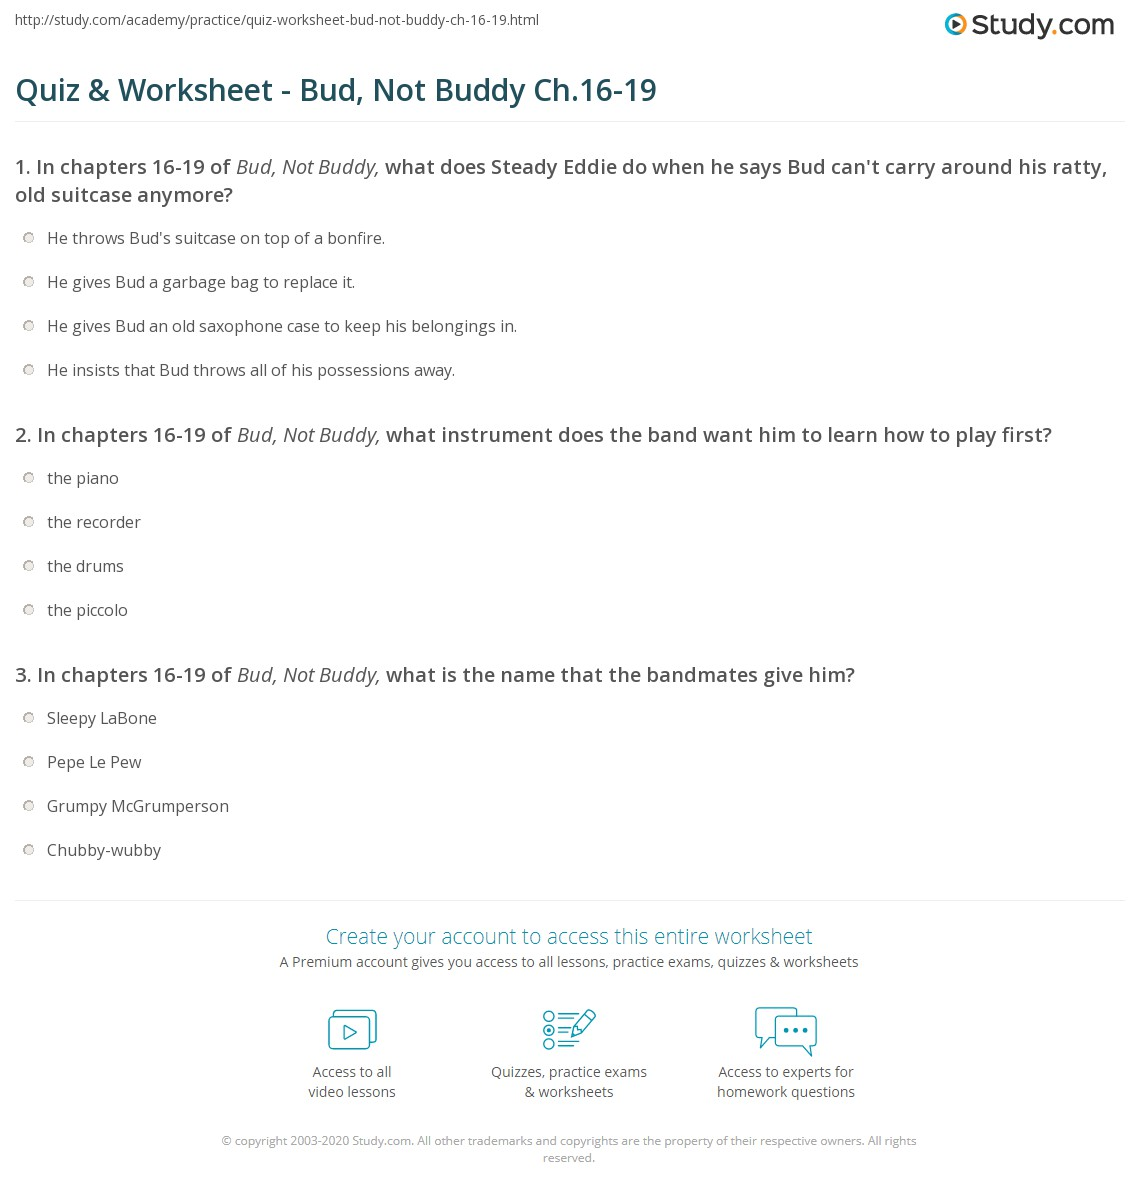 bud not buddy worksheets rringband quiz worksheet bud not buddy ch 16 19 study com